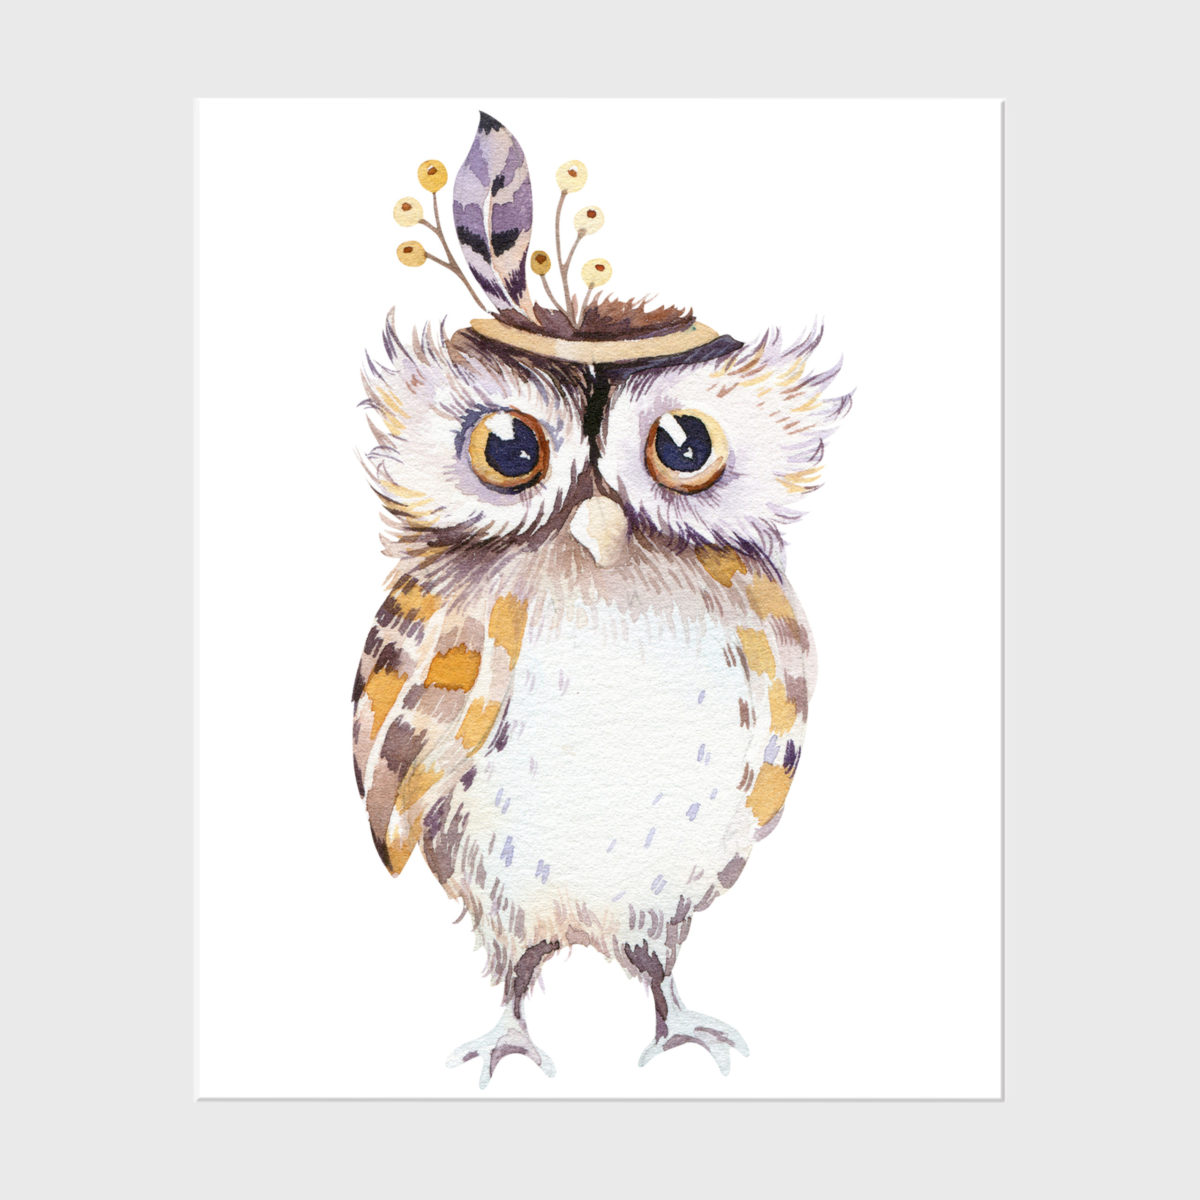 26. Owl without floral